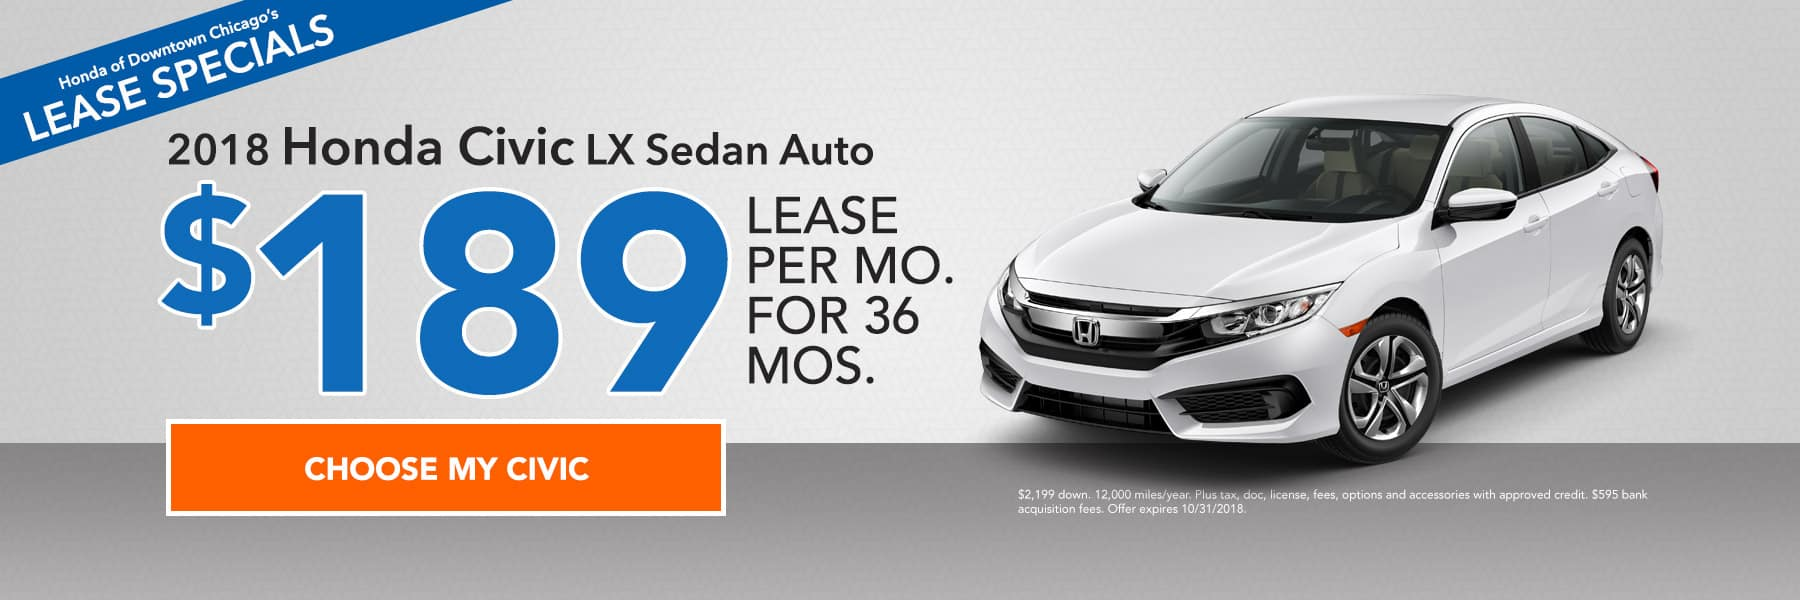 Lease specials - 2018 Honda Civic LX Sedan Auto - Lease for $189/month for 36 months - Choose my Civic